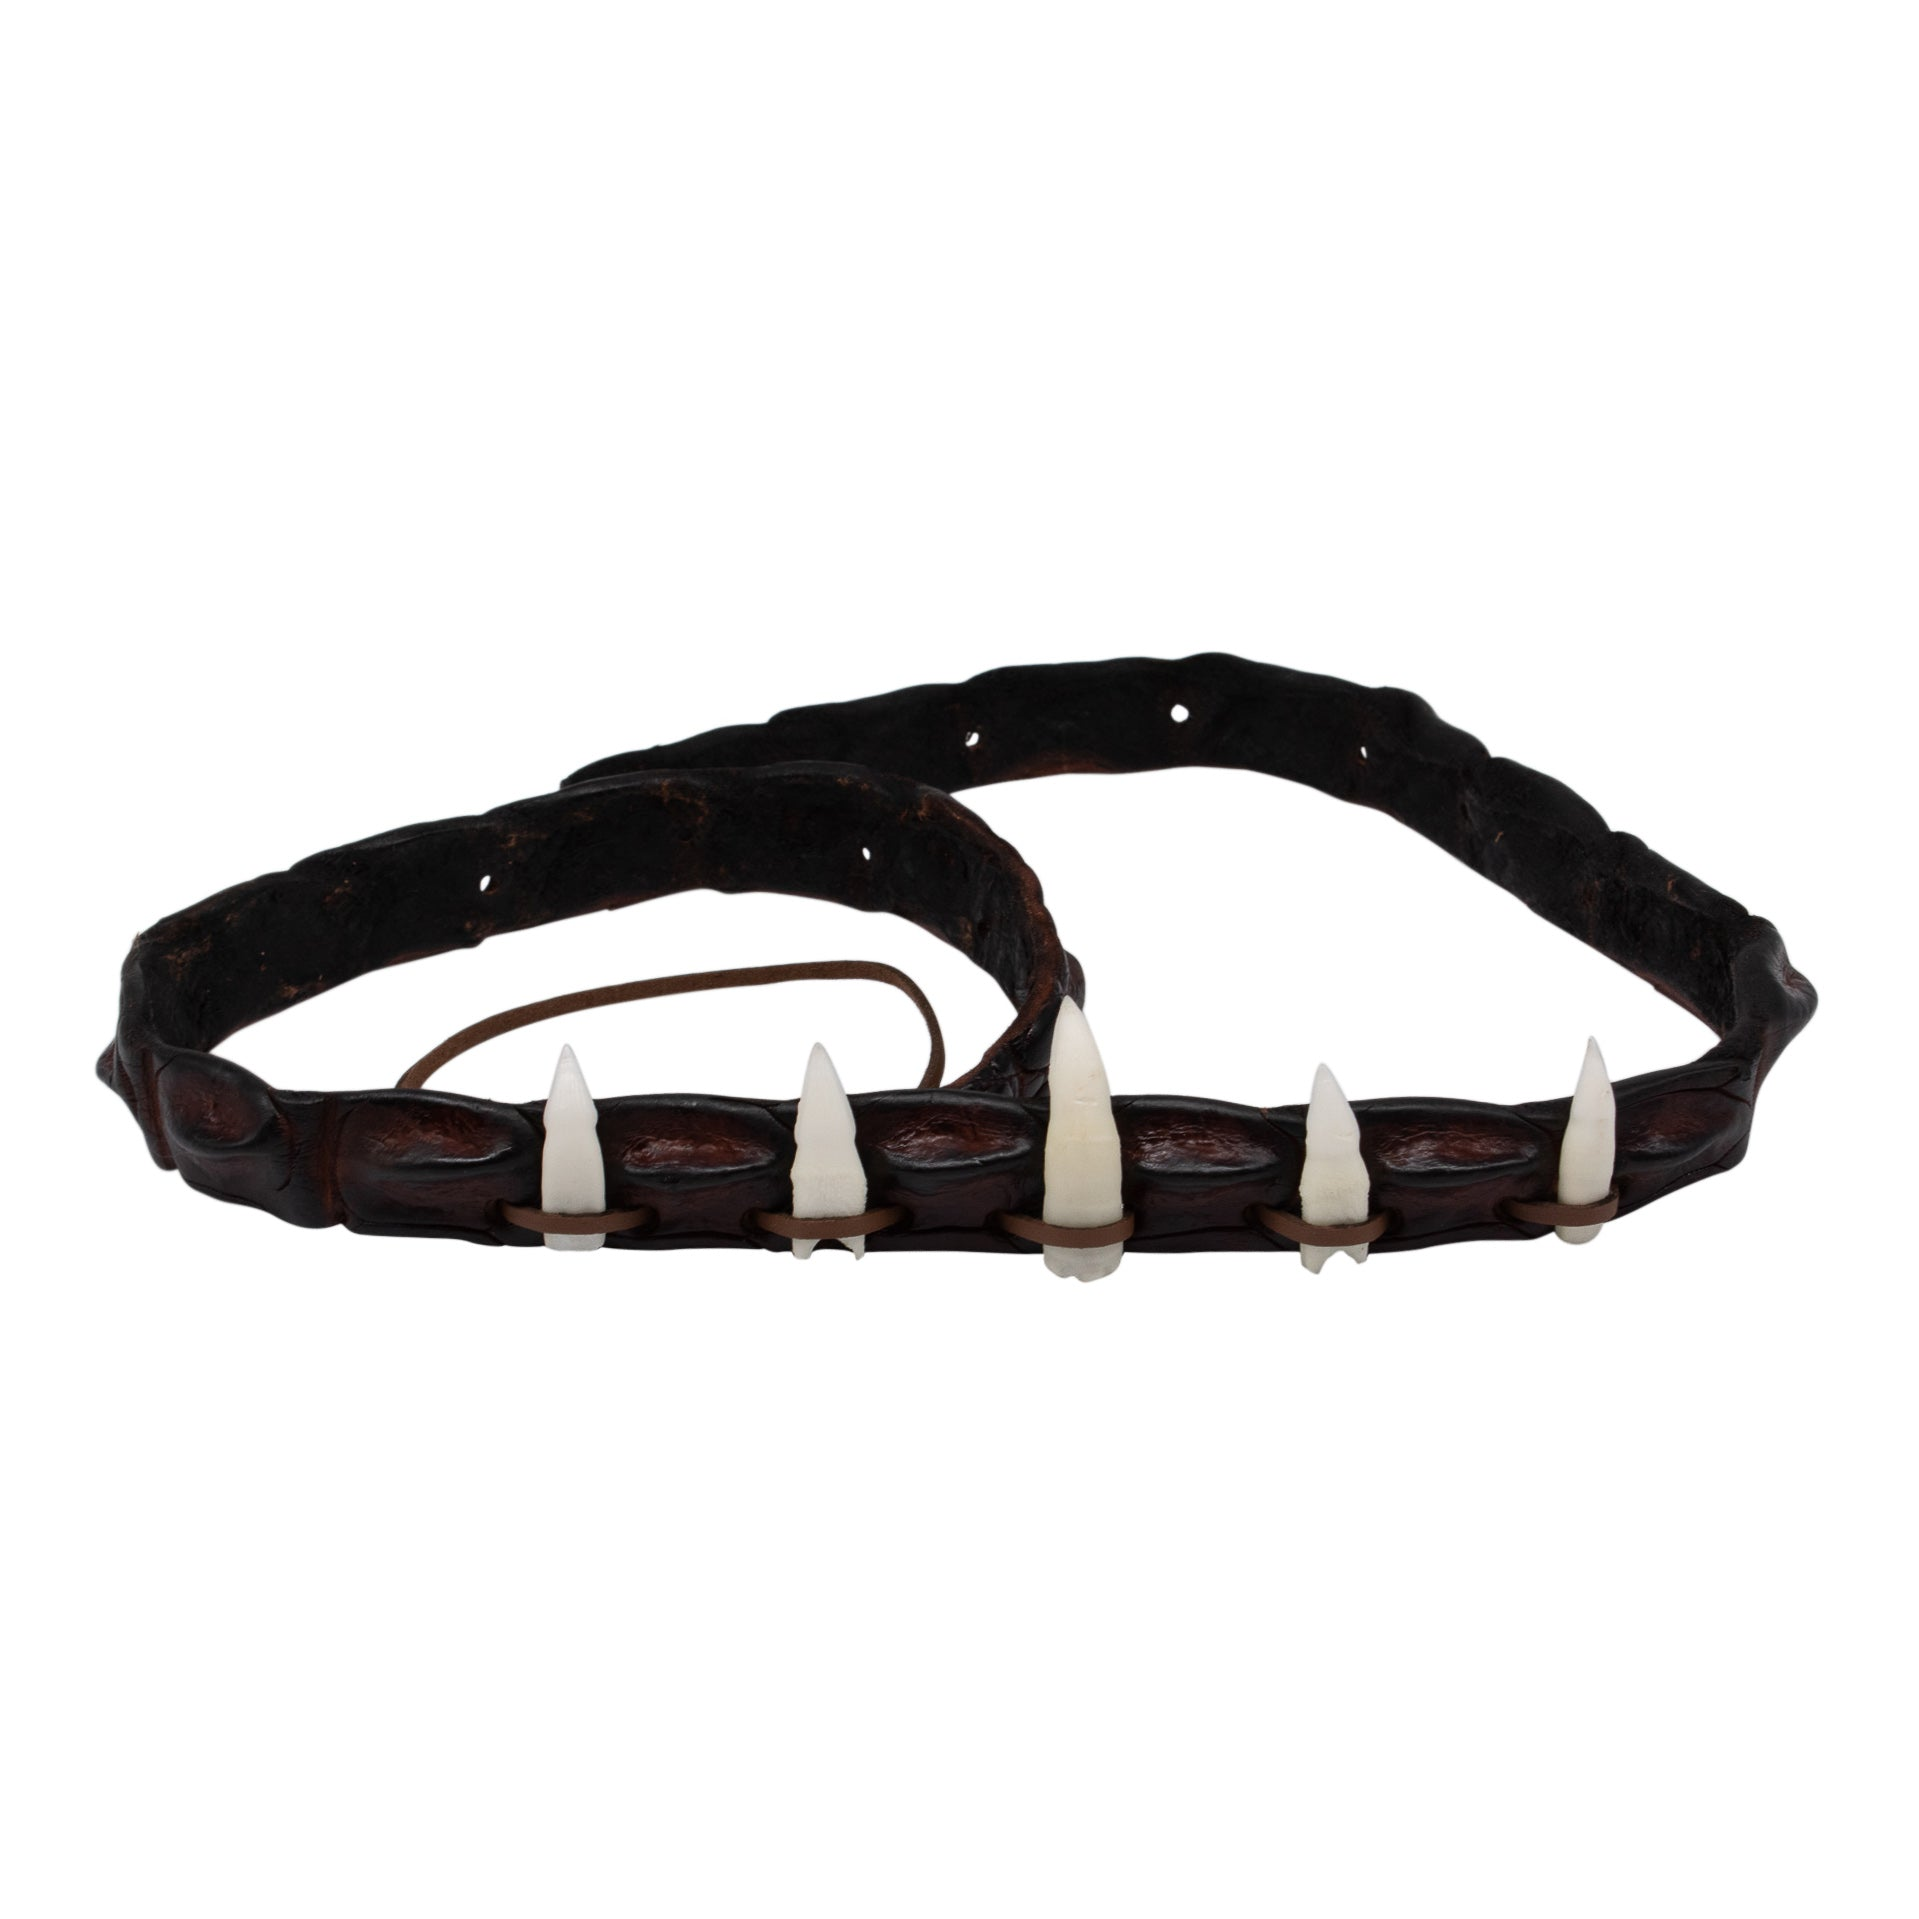 Crocodile teeth hat band-Crocodile teeth hat band-Oz About Oz